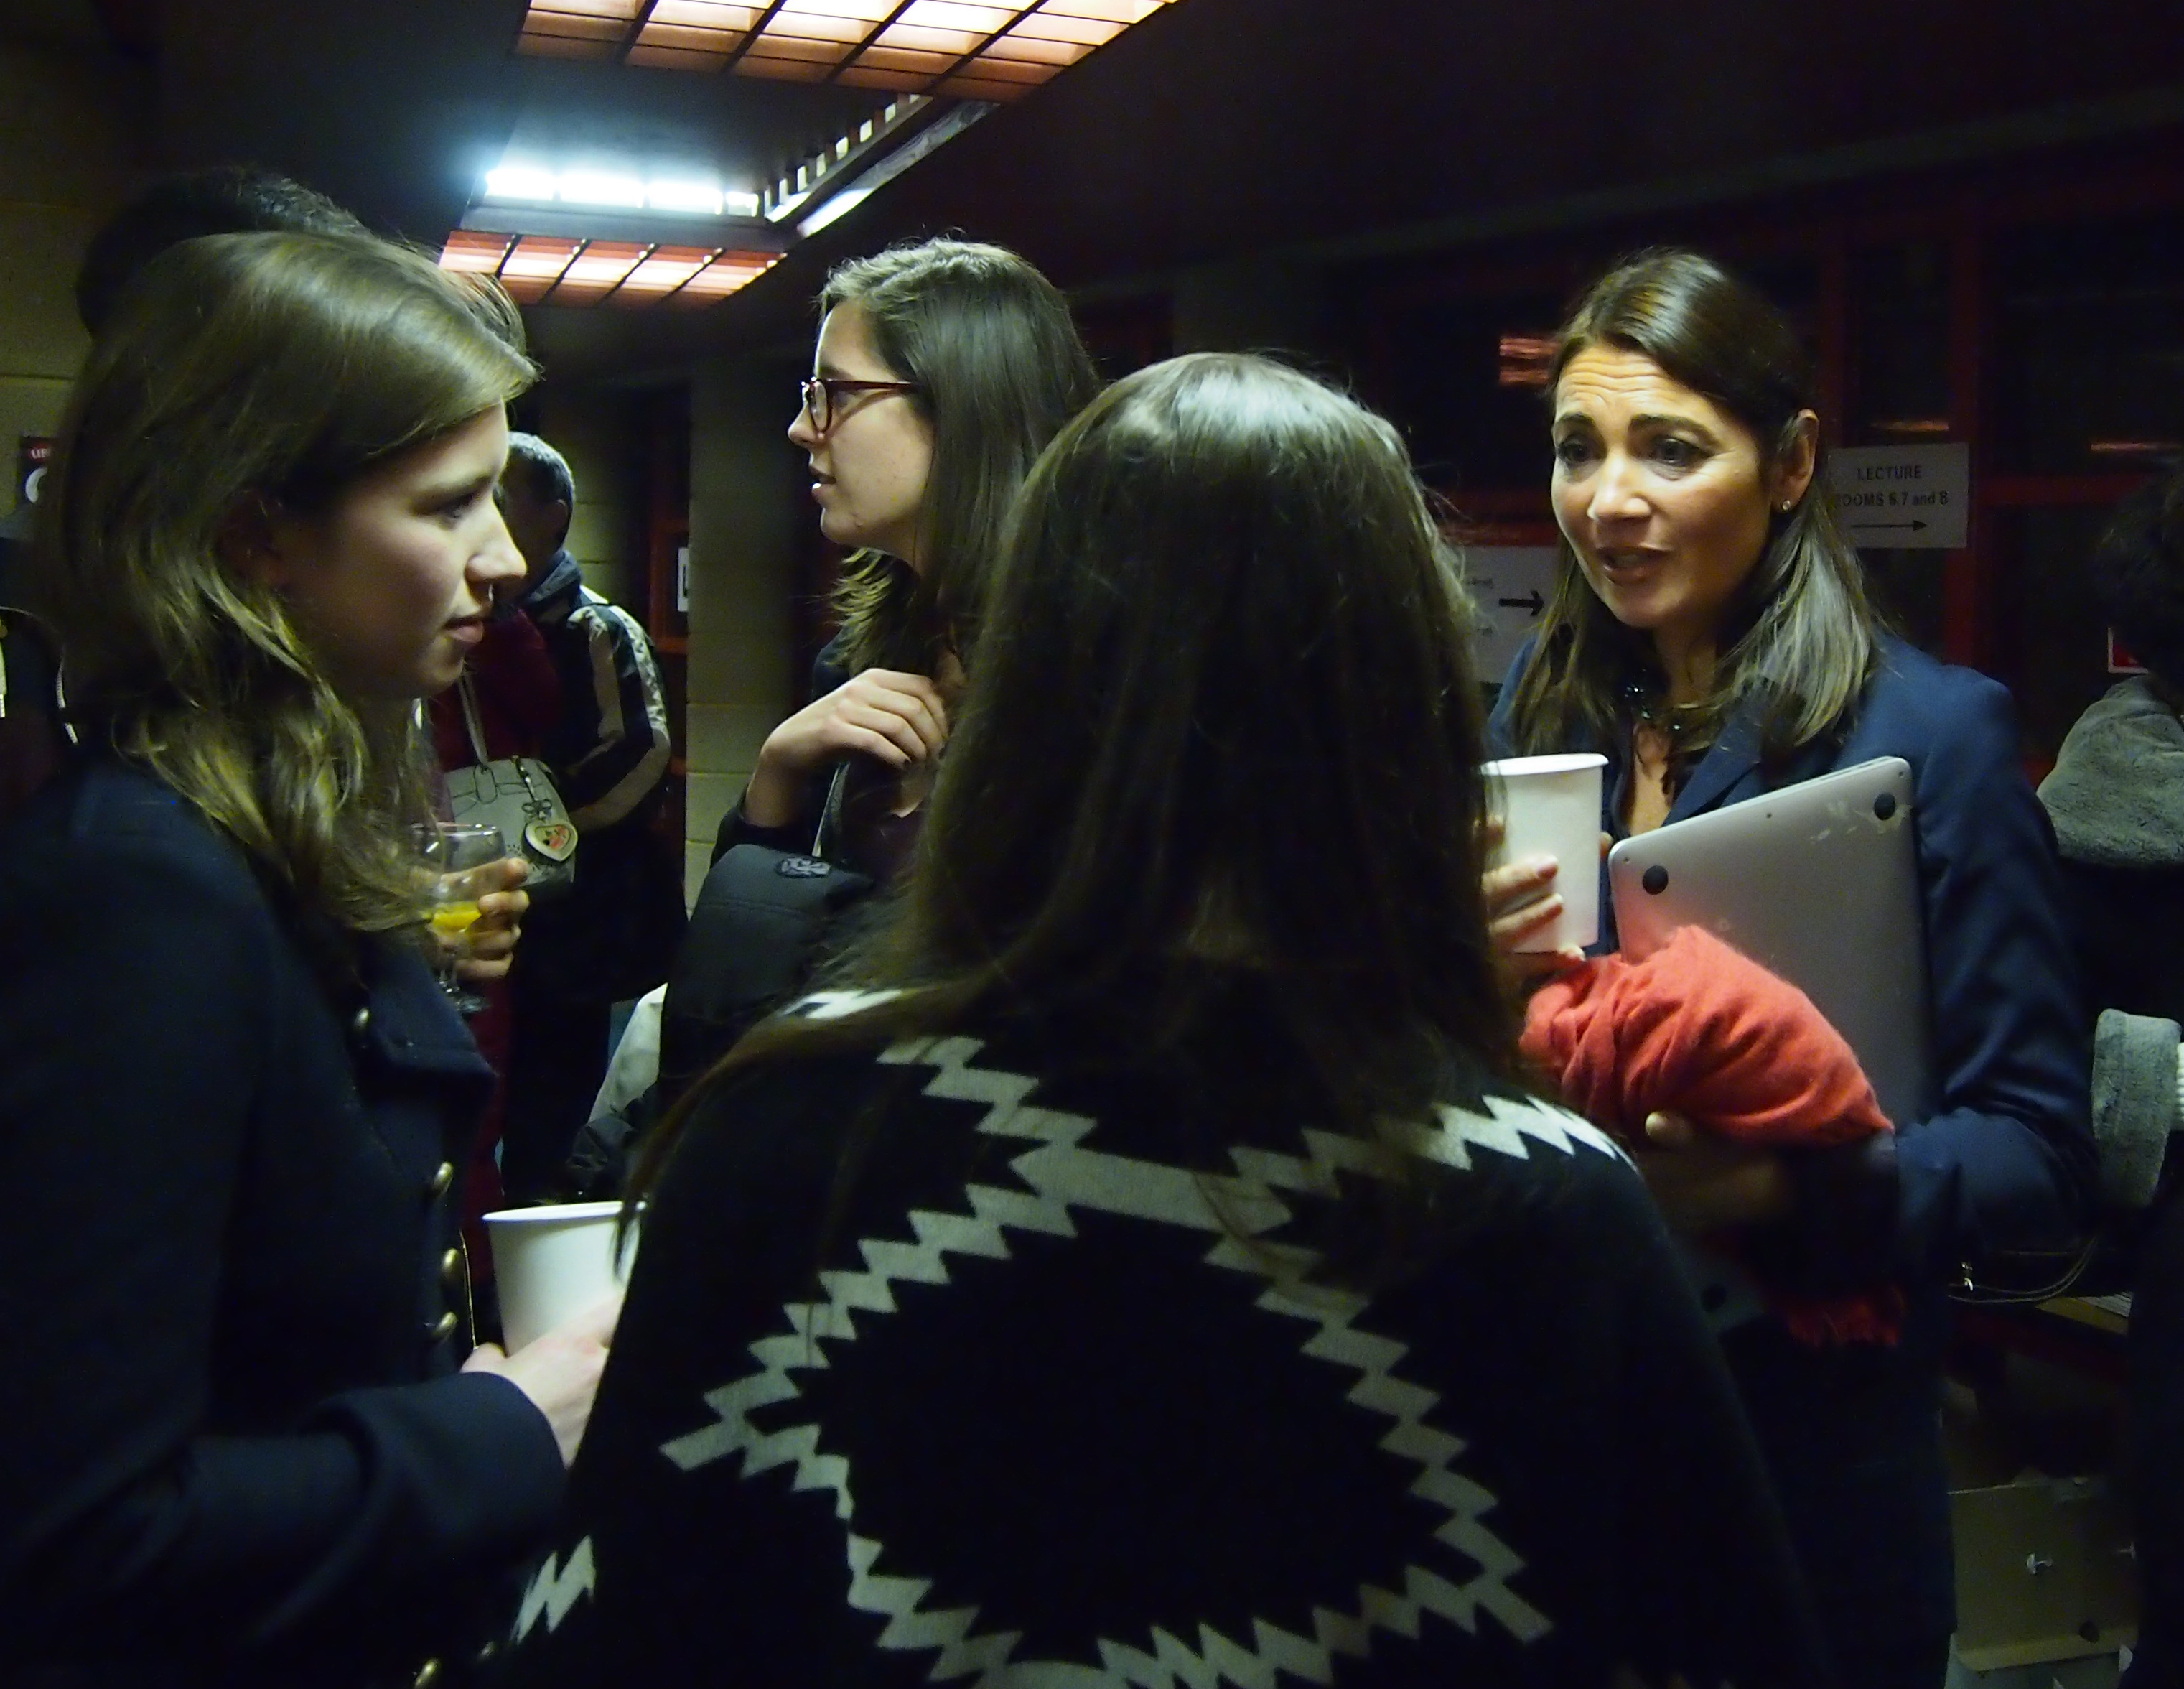 Katya Adler talking to students after the lecture